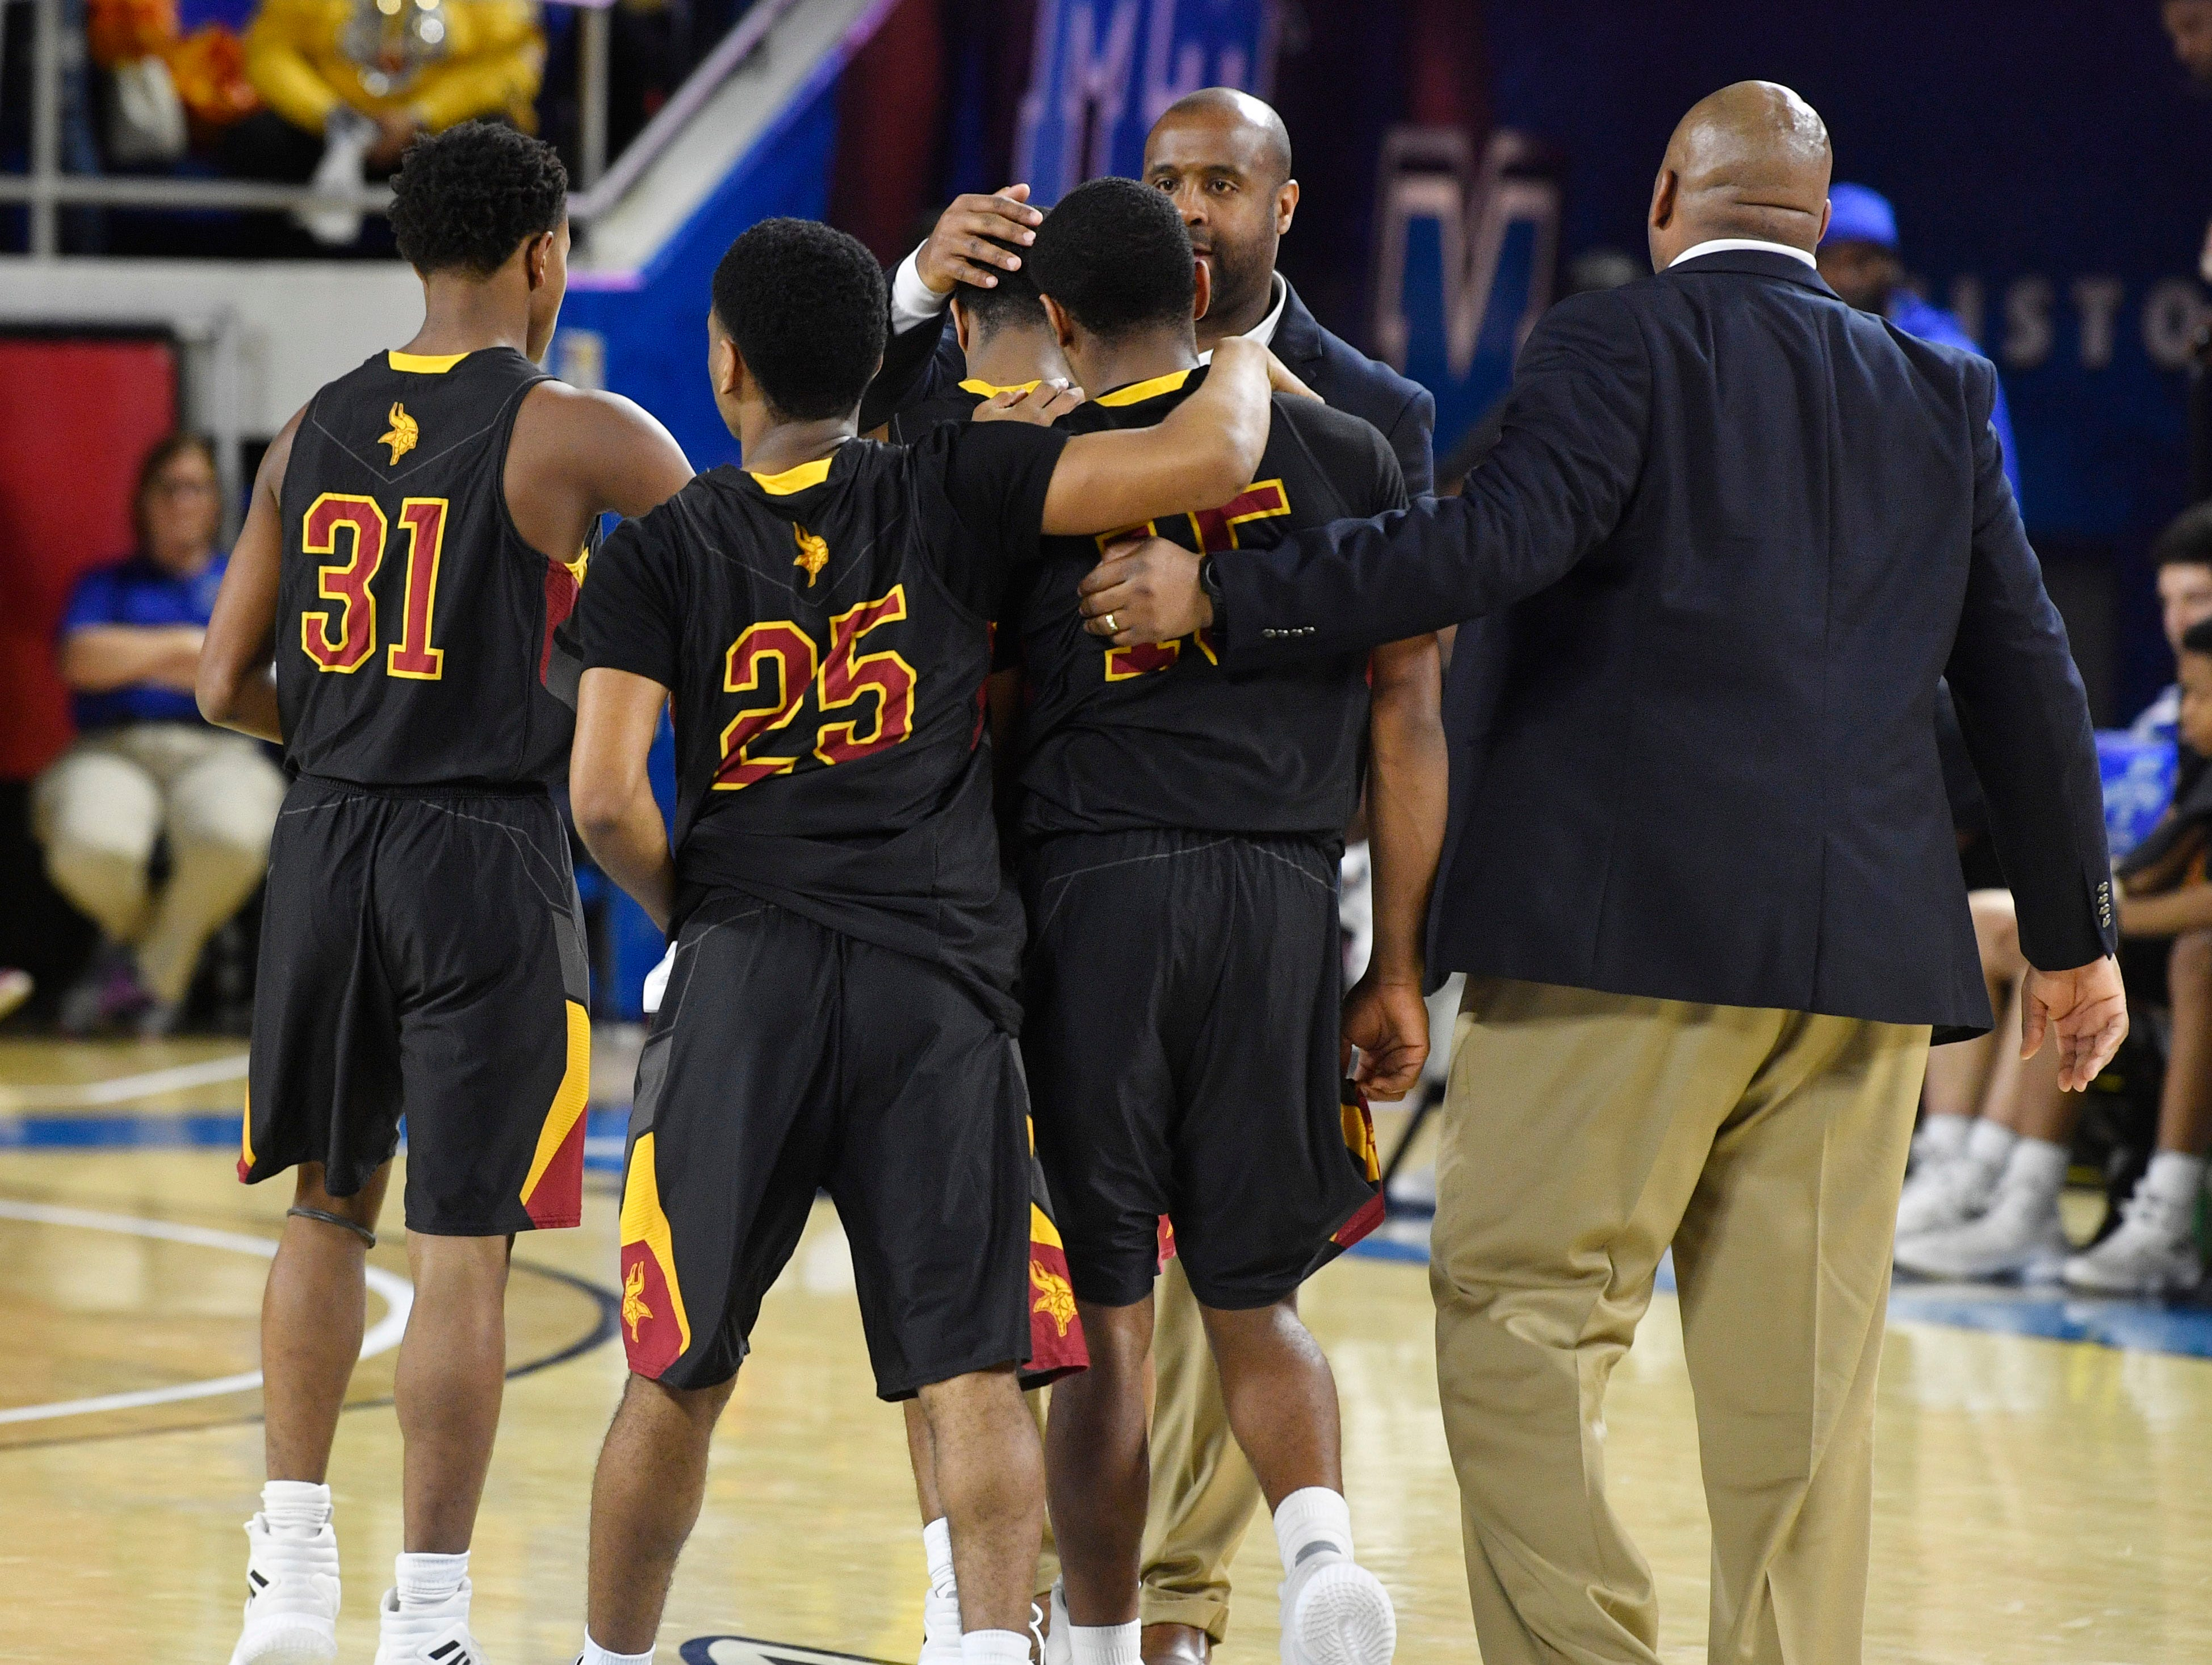 Humboldt players weren't happy with the 76-60 loss to Columbia Academy for the TSSAA Class A Championship  Saturday, March 16, 2019, in Murfreesboro, Tenn.